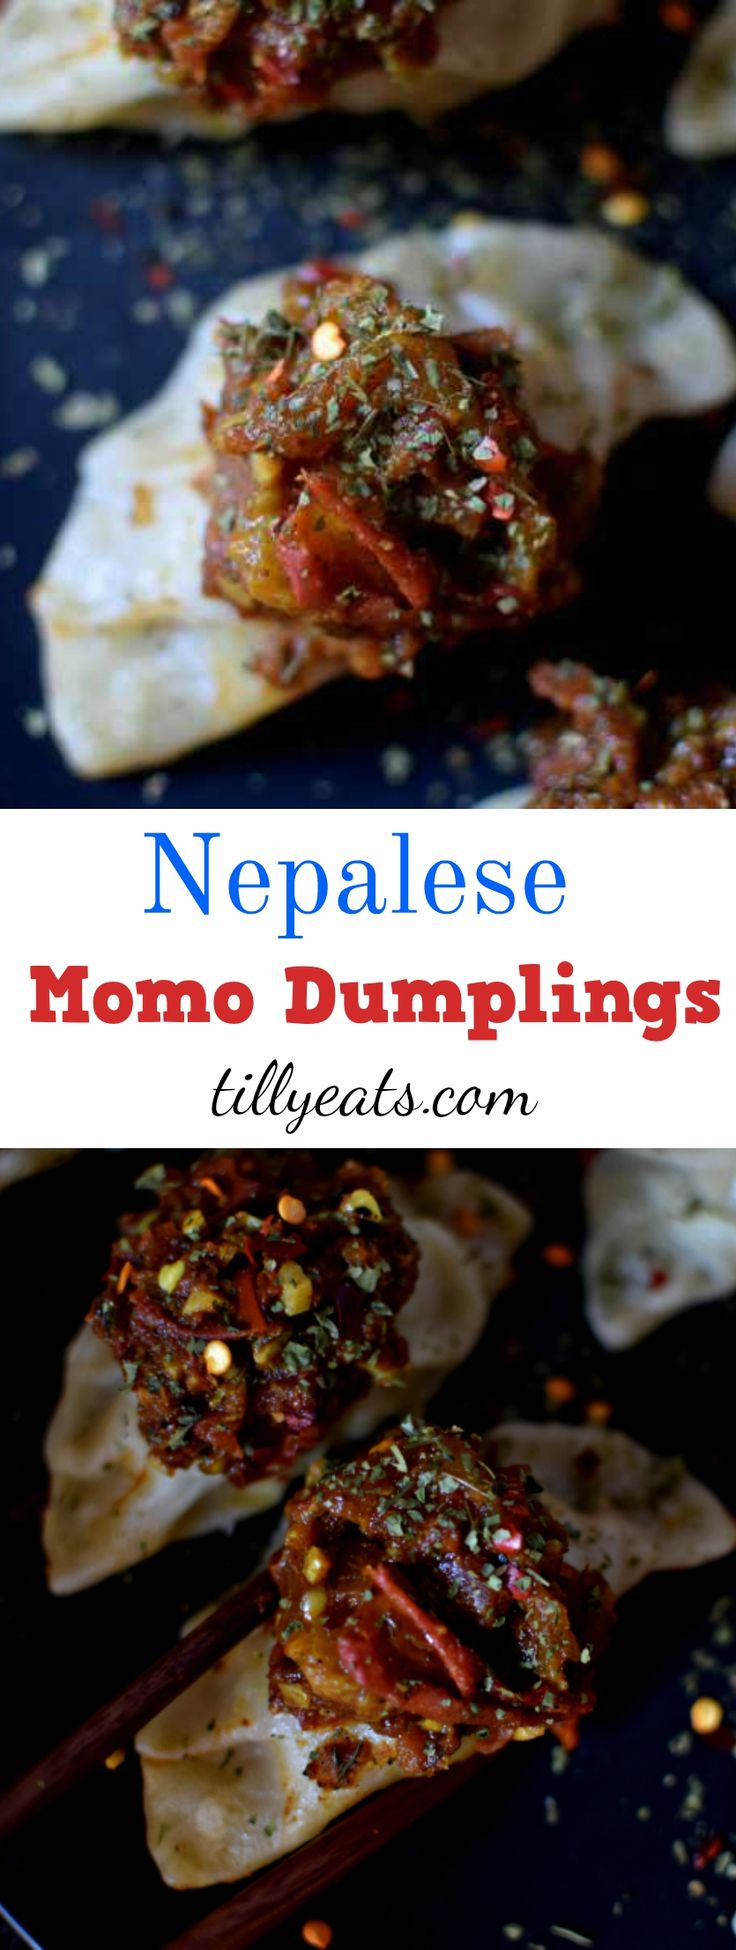 The use of coriander, cumin, turmeric, ginger in the dumpling mixture and the Tomato Chilli Chutney they're served with is what really sets these dumplings apart from any other Chinese/Japanese/Korean dumpling.   #dumplings  #nepal  #nepalese #recipe #food